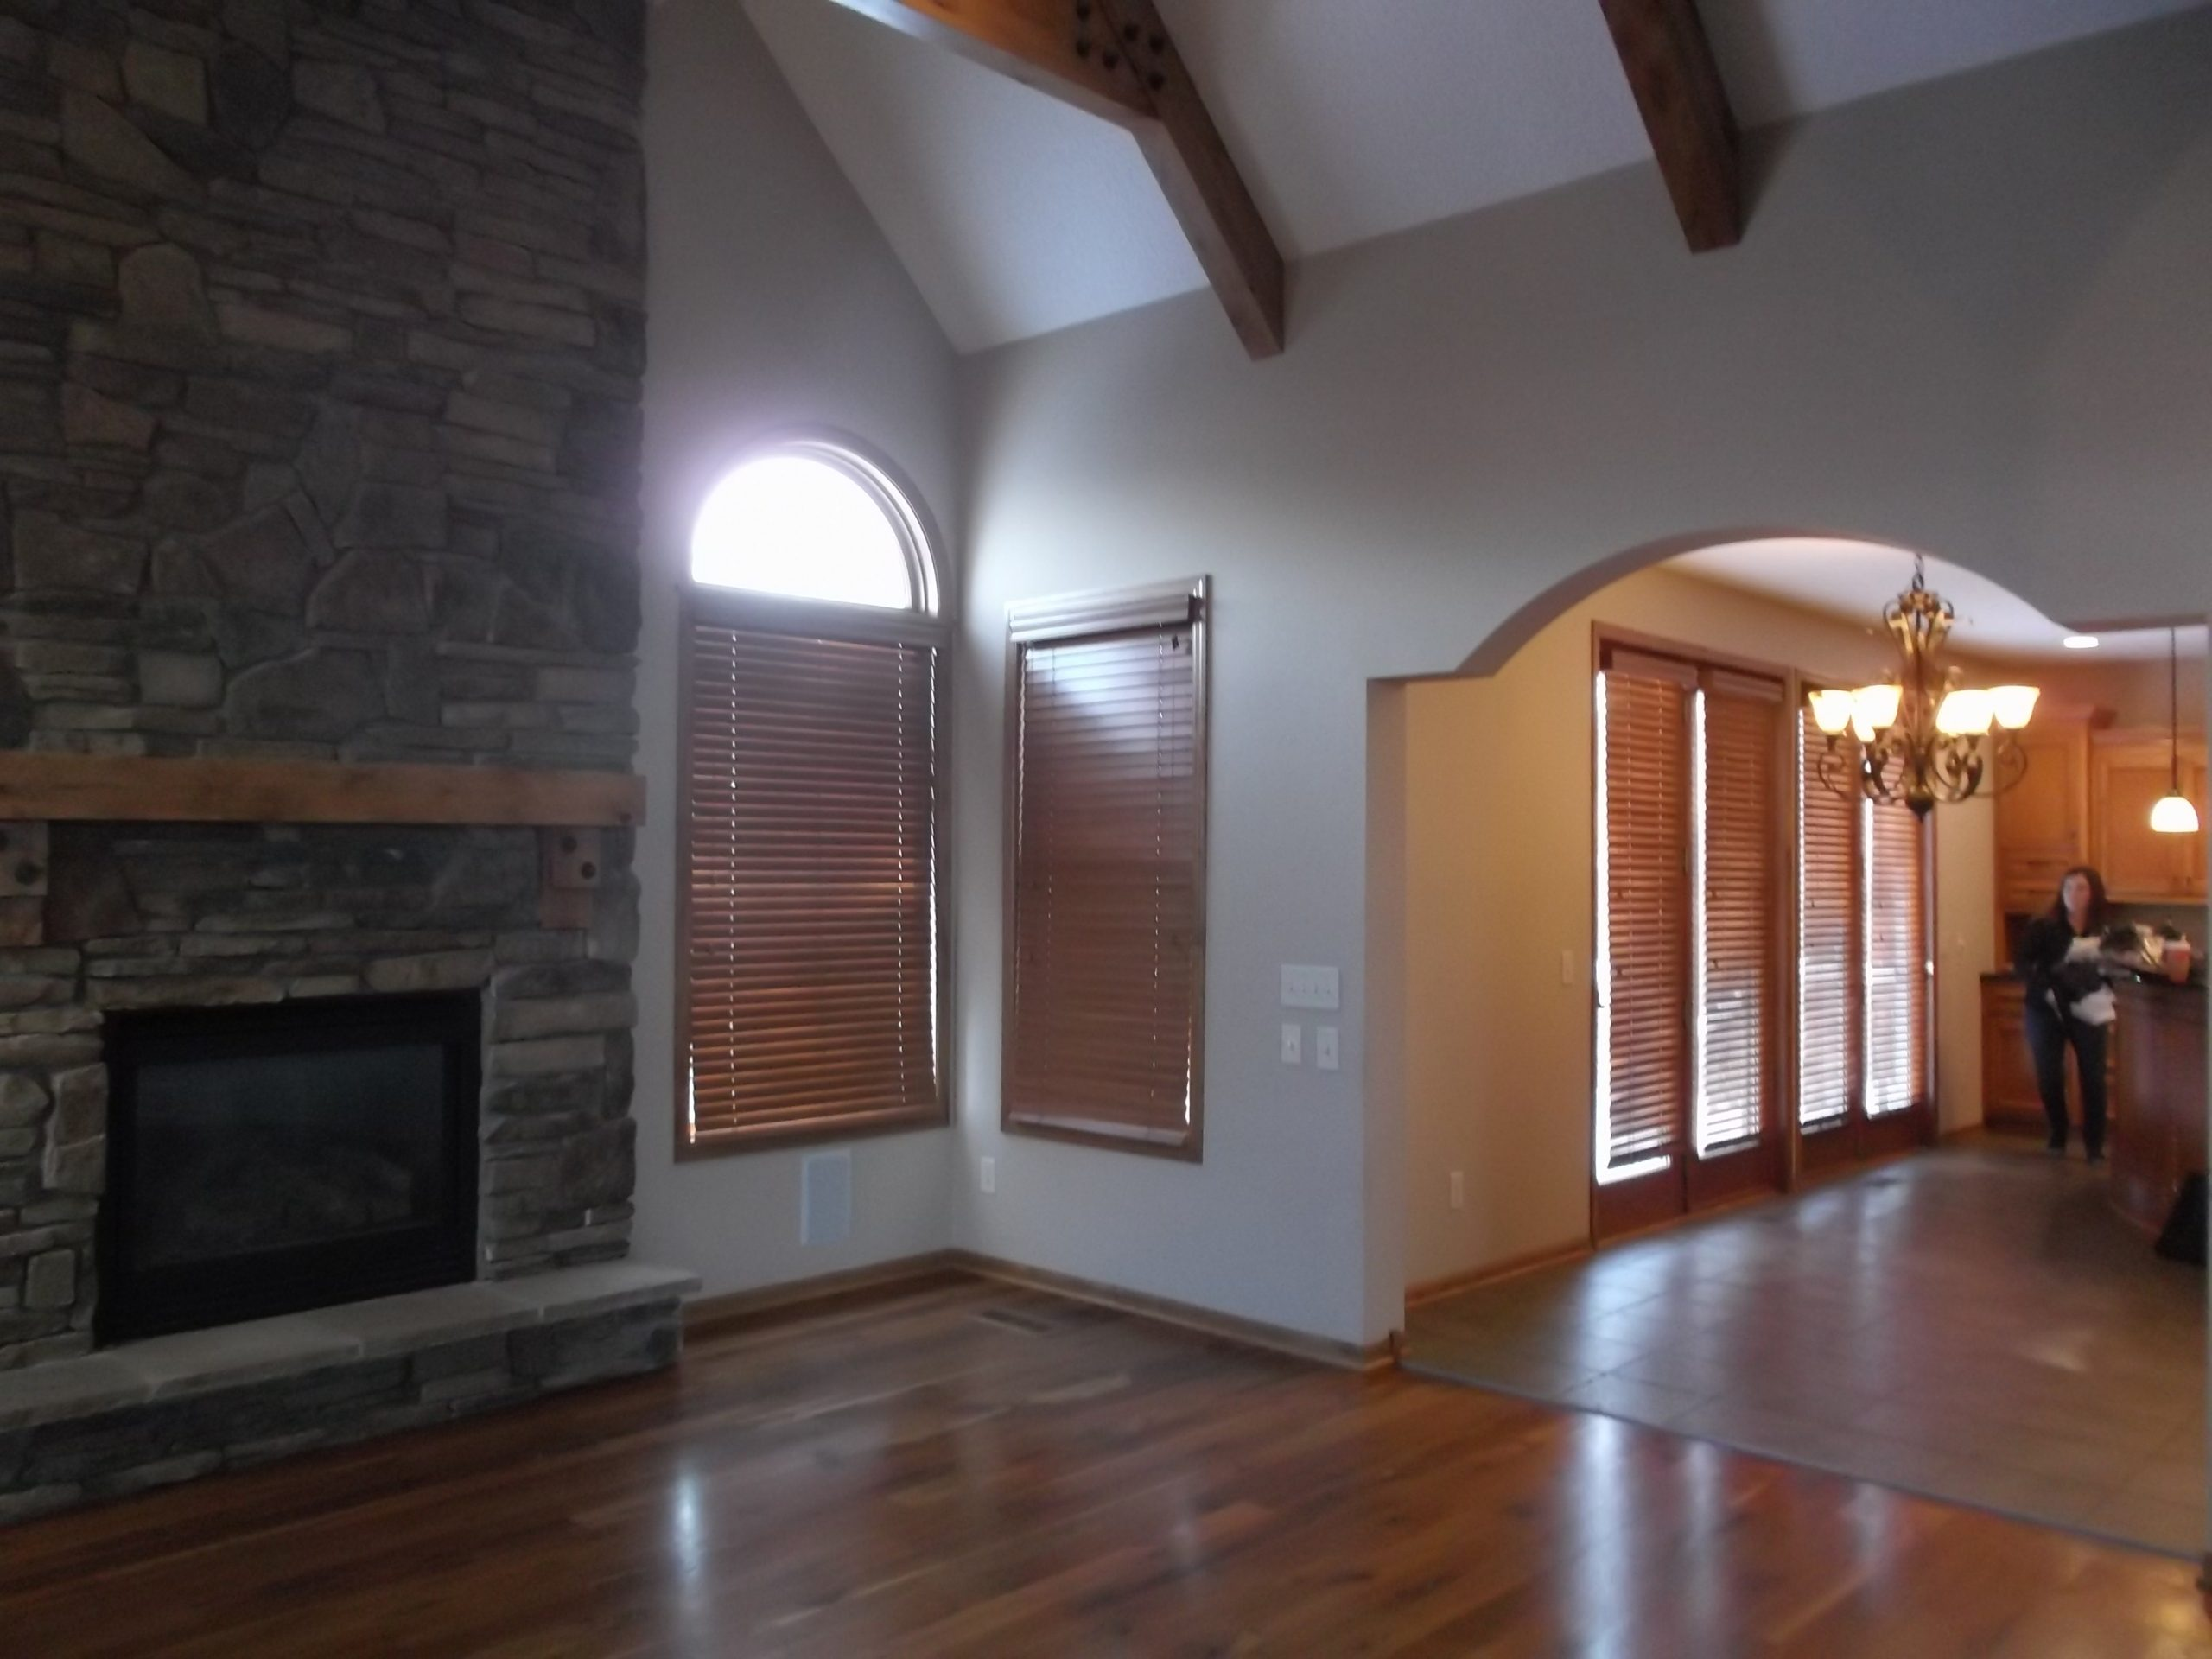 The home's original stone fireplace was too overpowering for the space and needed a contemporary upgrade.